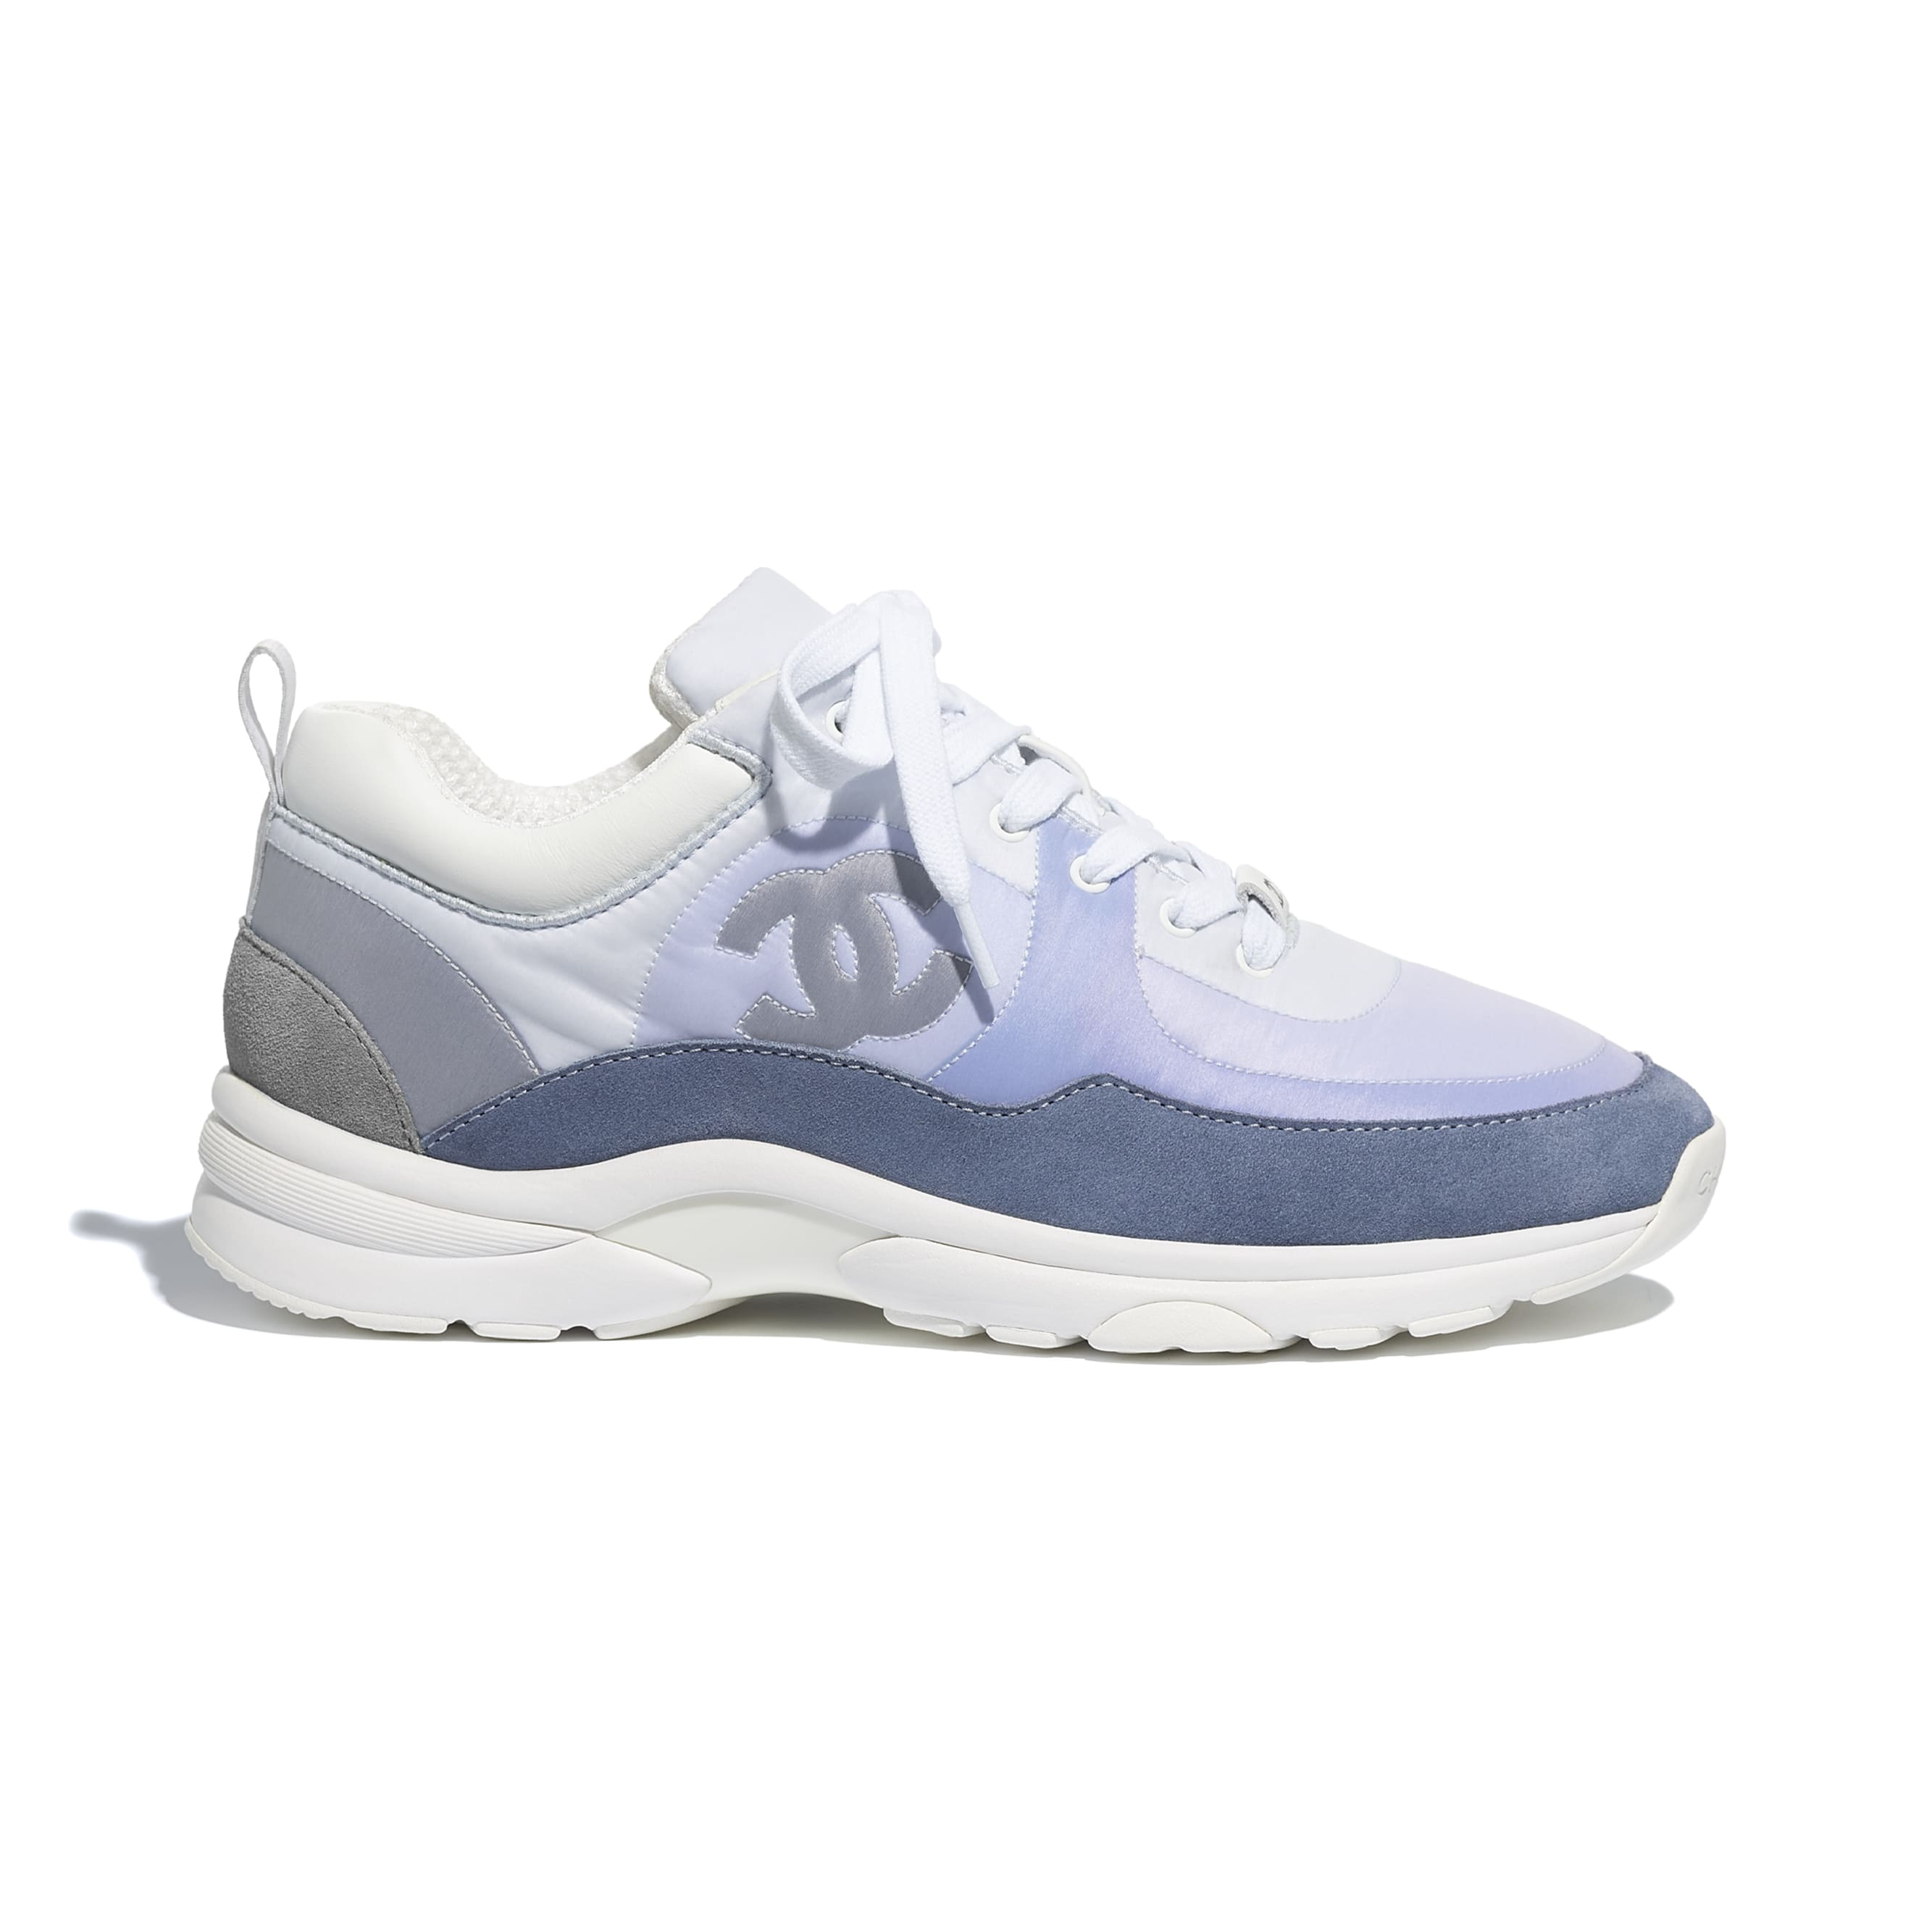 Trainers - Sky Blue - Suede Calfskin & Nylon - CHANEL - Default view - see standard sized version